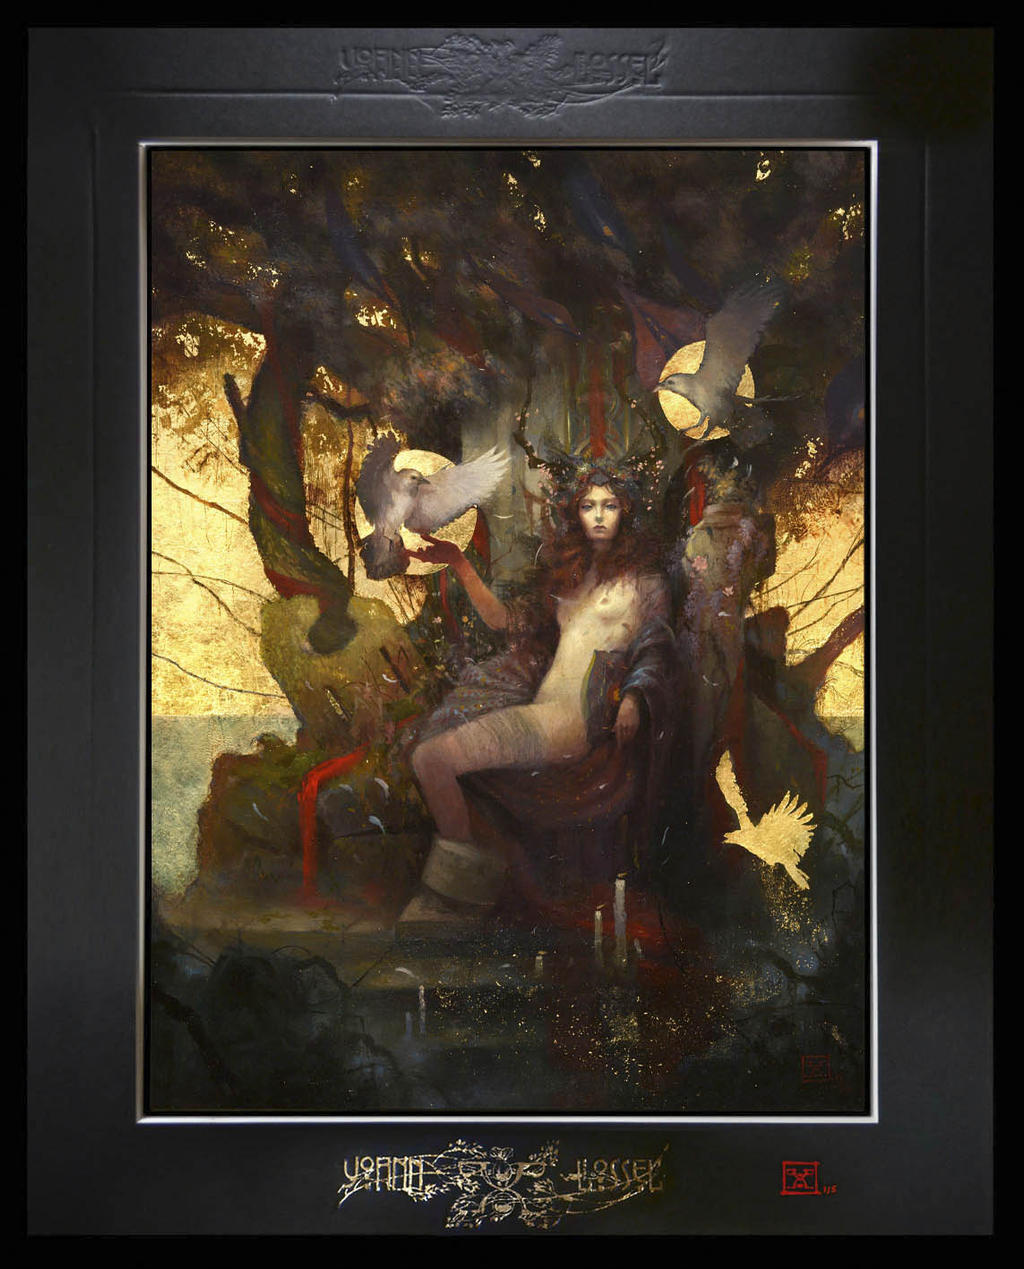 La Morrigan - Deluxe Edition by Yoann-Lossel